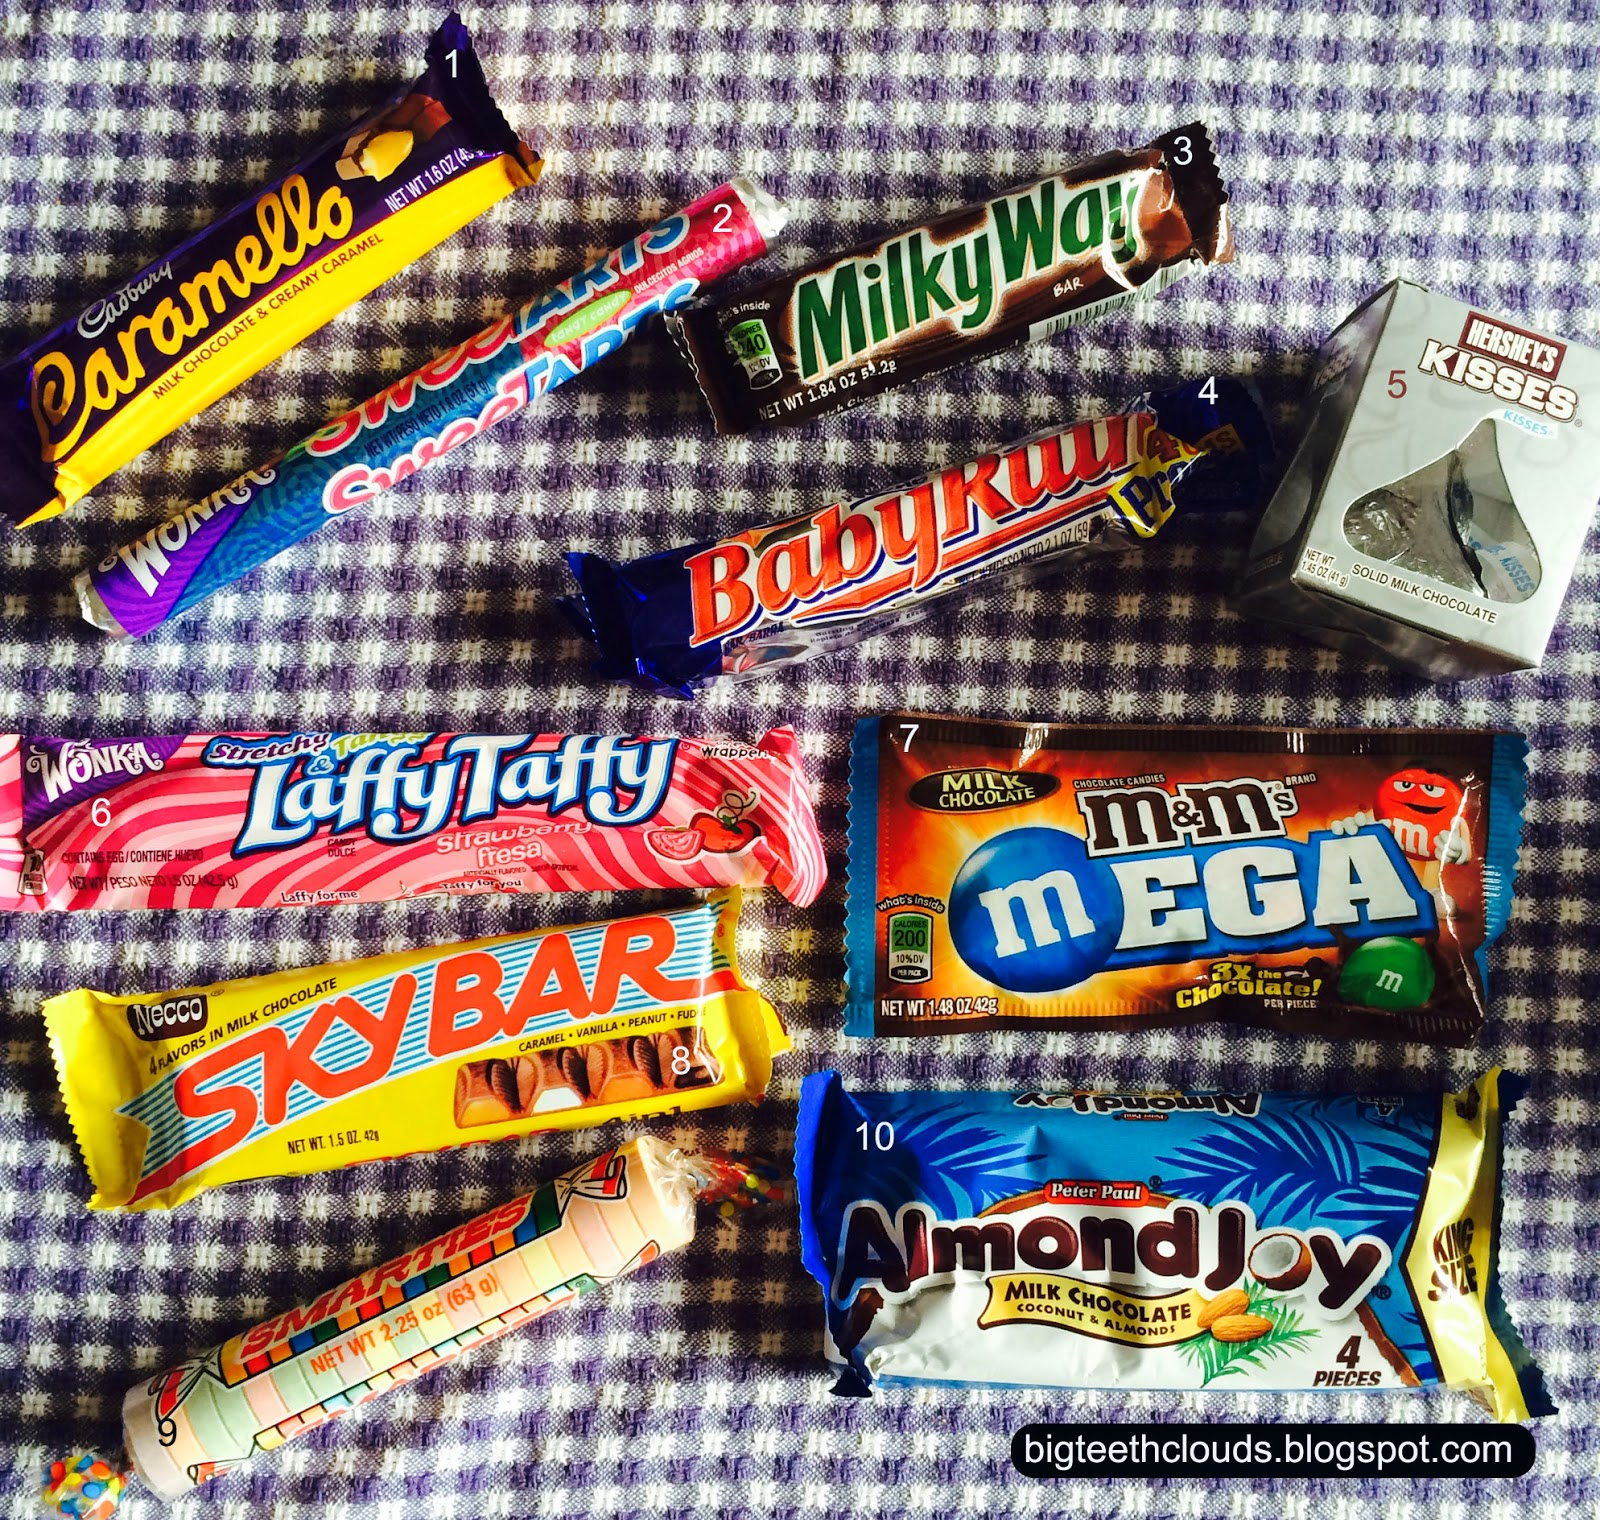 Candy bars for recognizing a group of kids: caramello, milky way, baby ruth, laffy taffy, sky, almond joy and more...